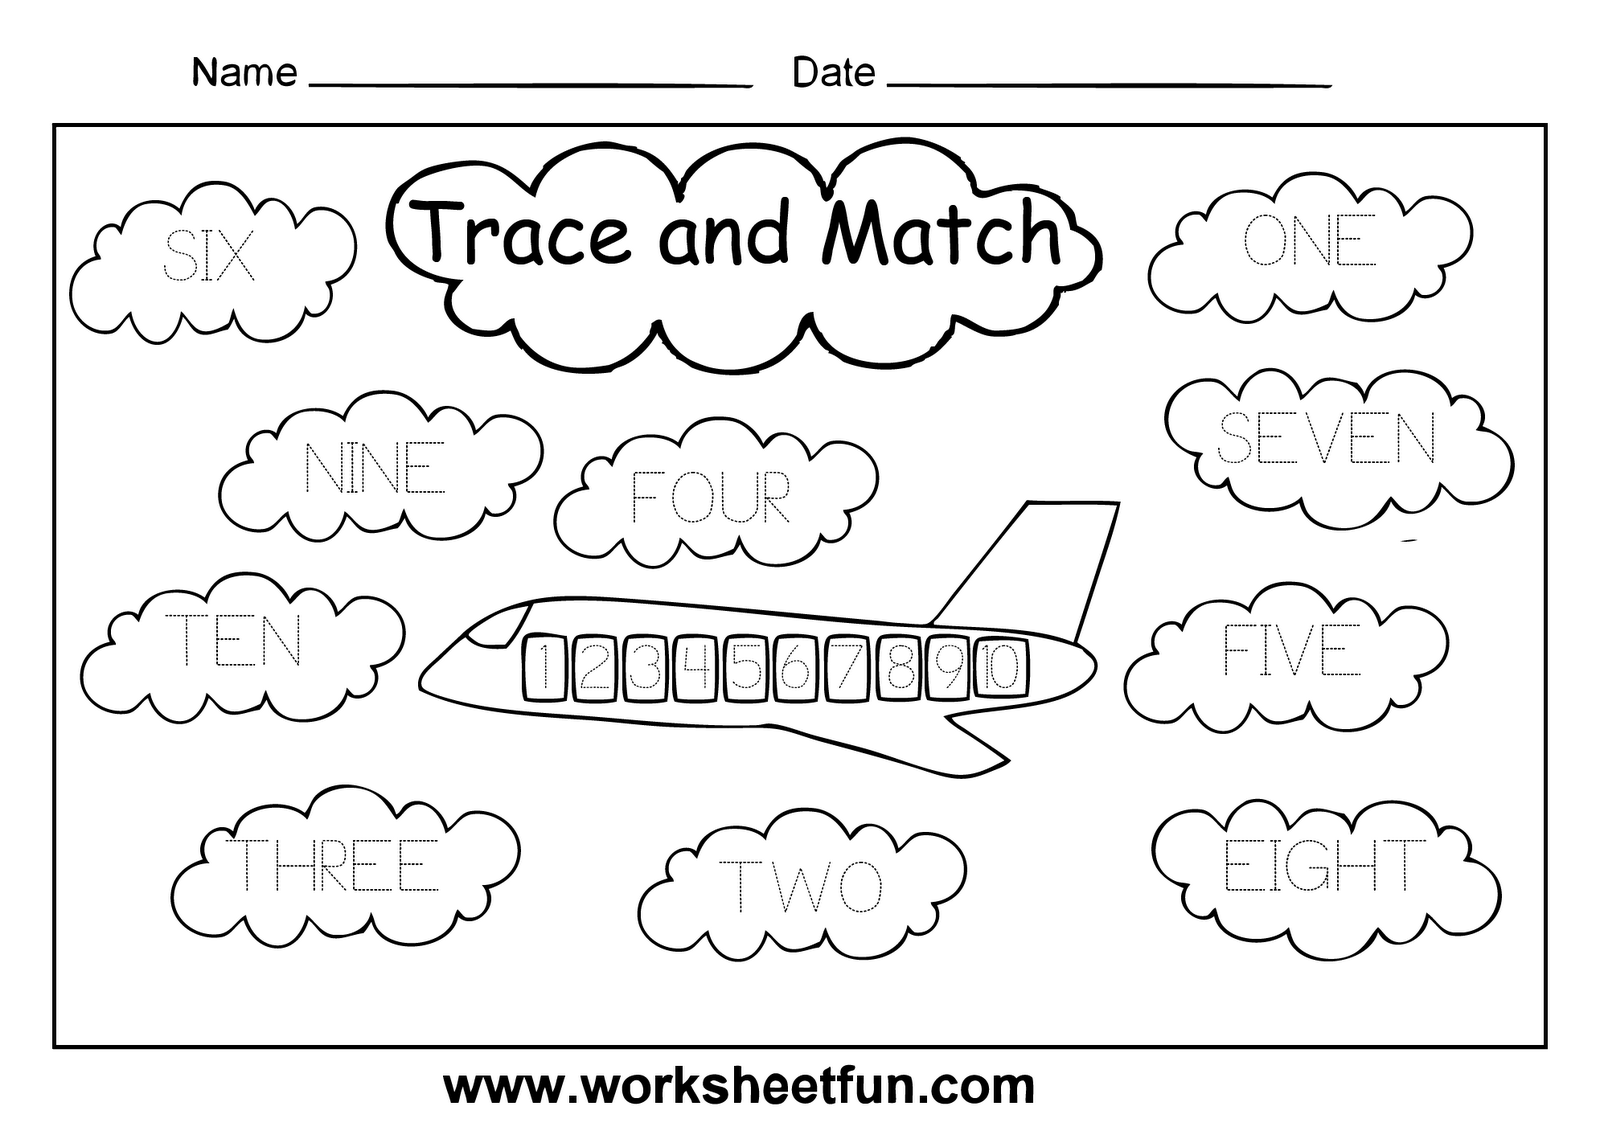 Proatmealus  Picturesque Numbers Worksheet    Narrativamente With Luxury Arabic Practice Worksheets Besides Hundred Chart Worksheets Furthermore Worksheets Mean Median Mode With Enchanting Worksheets For Children With Dyslexia Also Free Time Worksheet In Addition Fractions And Decimals Worksheets Grade  And Worksheets Rounding As Well As Fractions Worksheet Ks Additionally Semantics Worksheets From Narrativamentecom With Proatmealus  Luxury Numbers Worksheet    Narrativamente With Enchanting Arabic Practice Worksheets Besides Hundred Chart Worksheets Furthermore Worksheets Mean Median Mode And Picturesque Worksheets For Children With Dyslexia Also Free Time Worksheet In Addition Fractions And Decimals Worksheets Grade  From Narrativamentecom